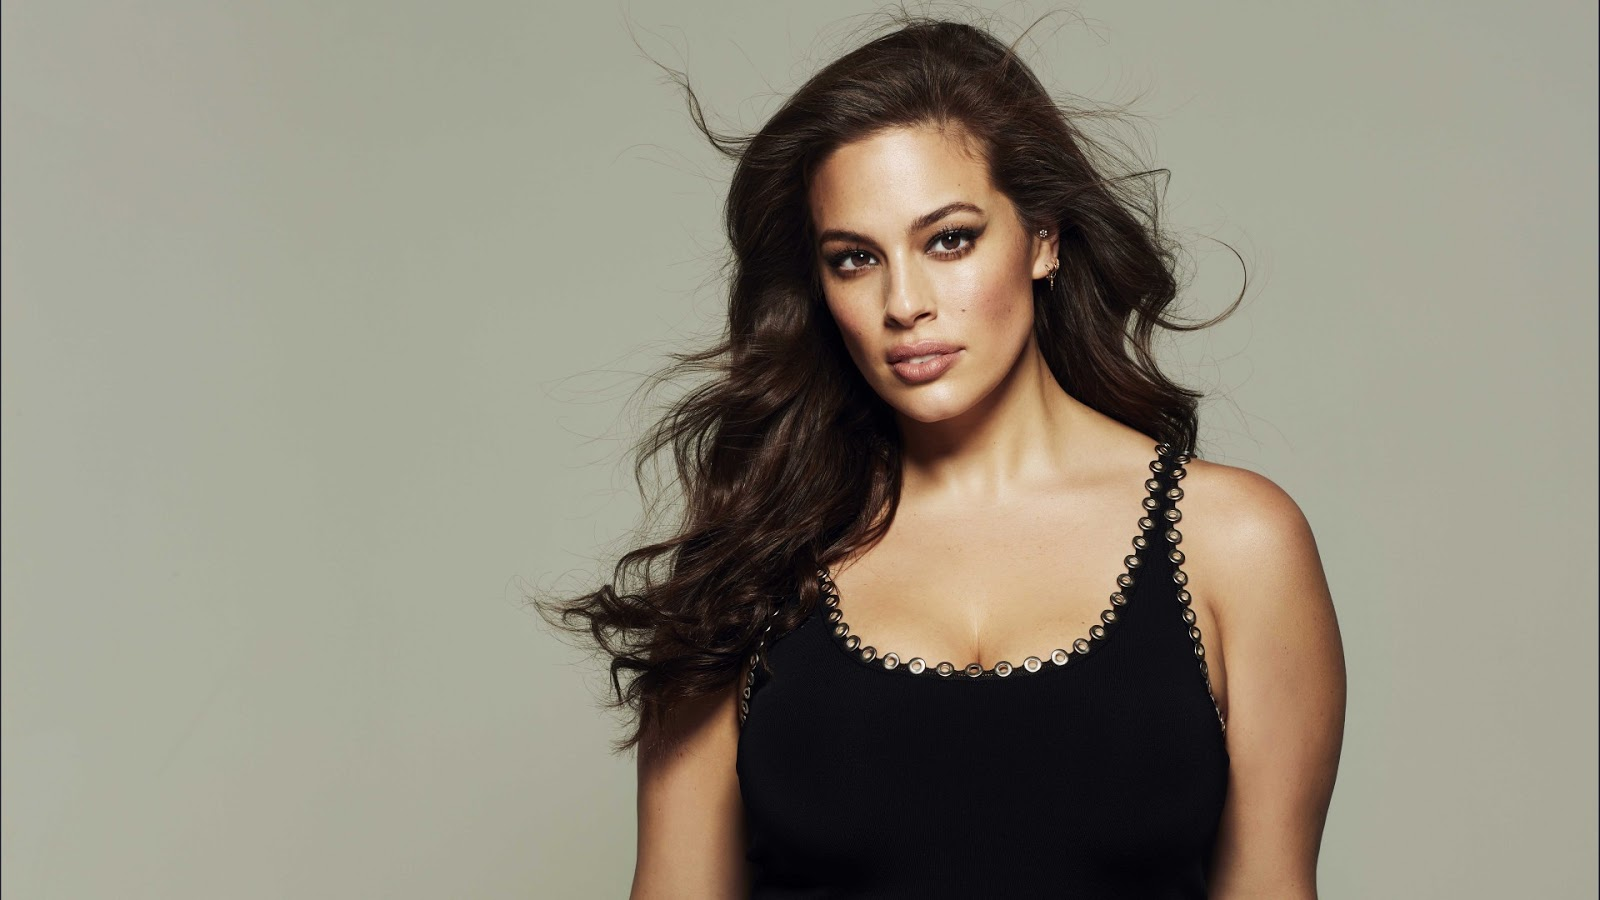 Ashley Graham Black Top HD Wallpaper